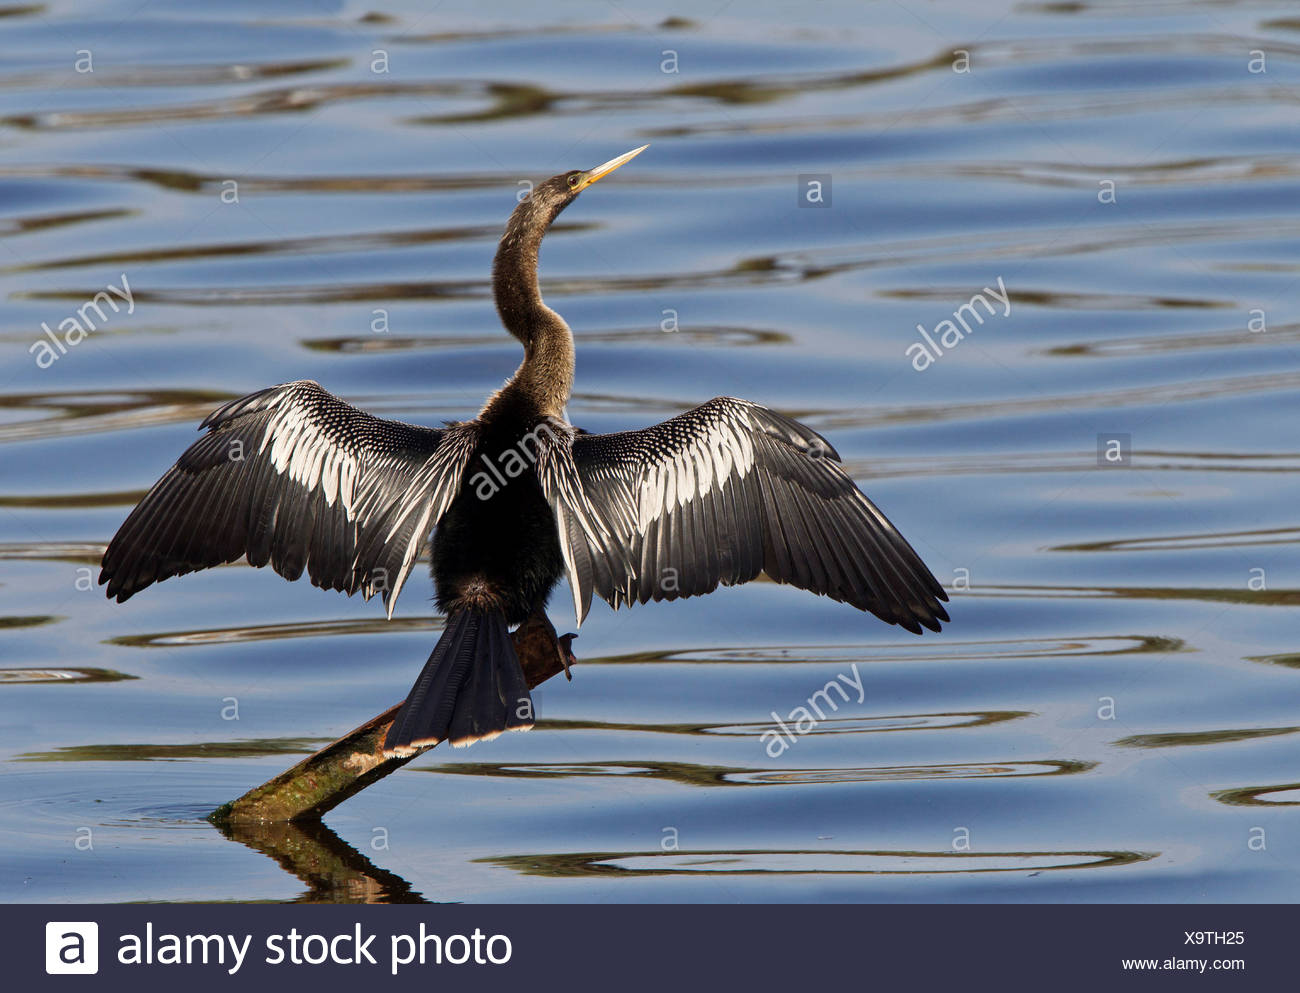 Metal Wings Stock Photos & Metal Wings Stock Images - Page 3 - Alamy